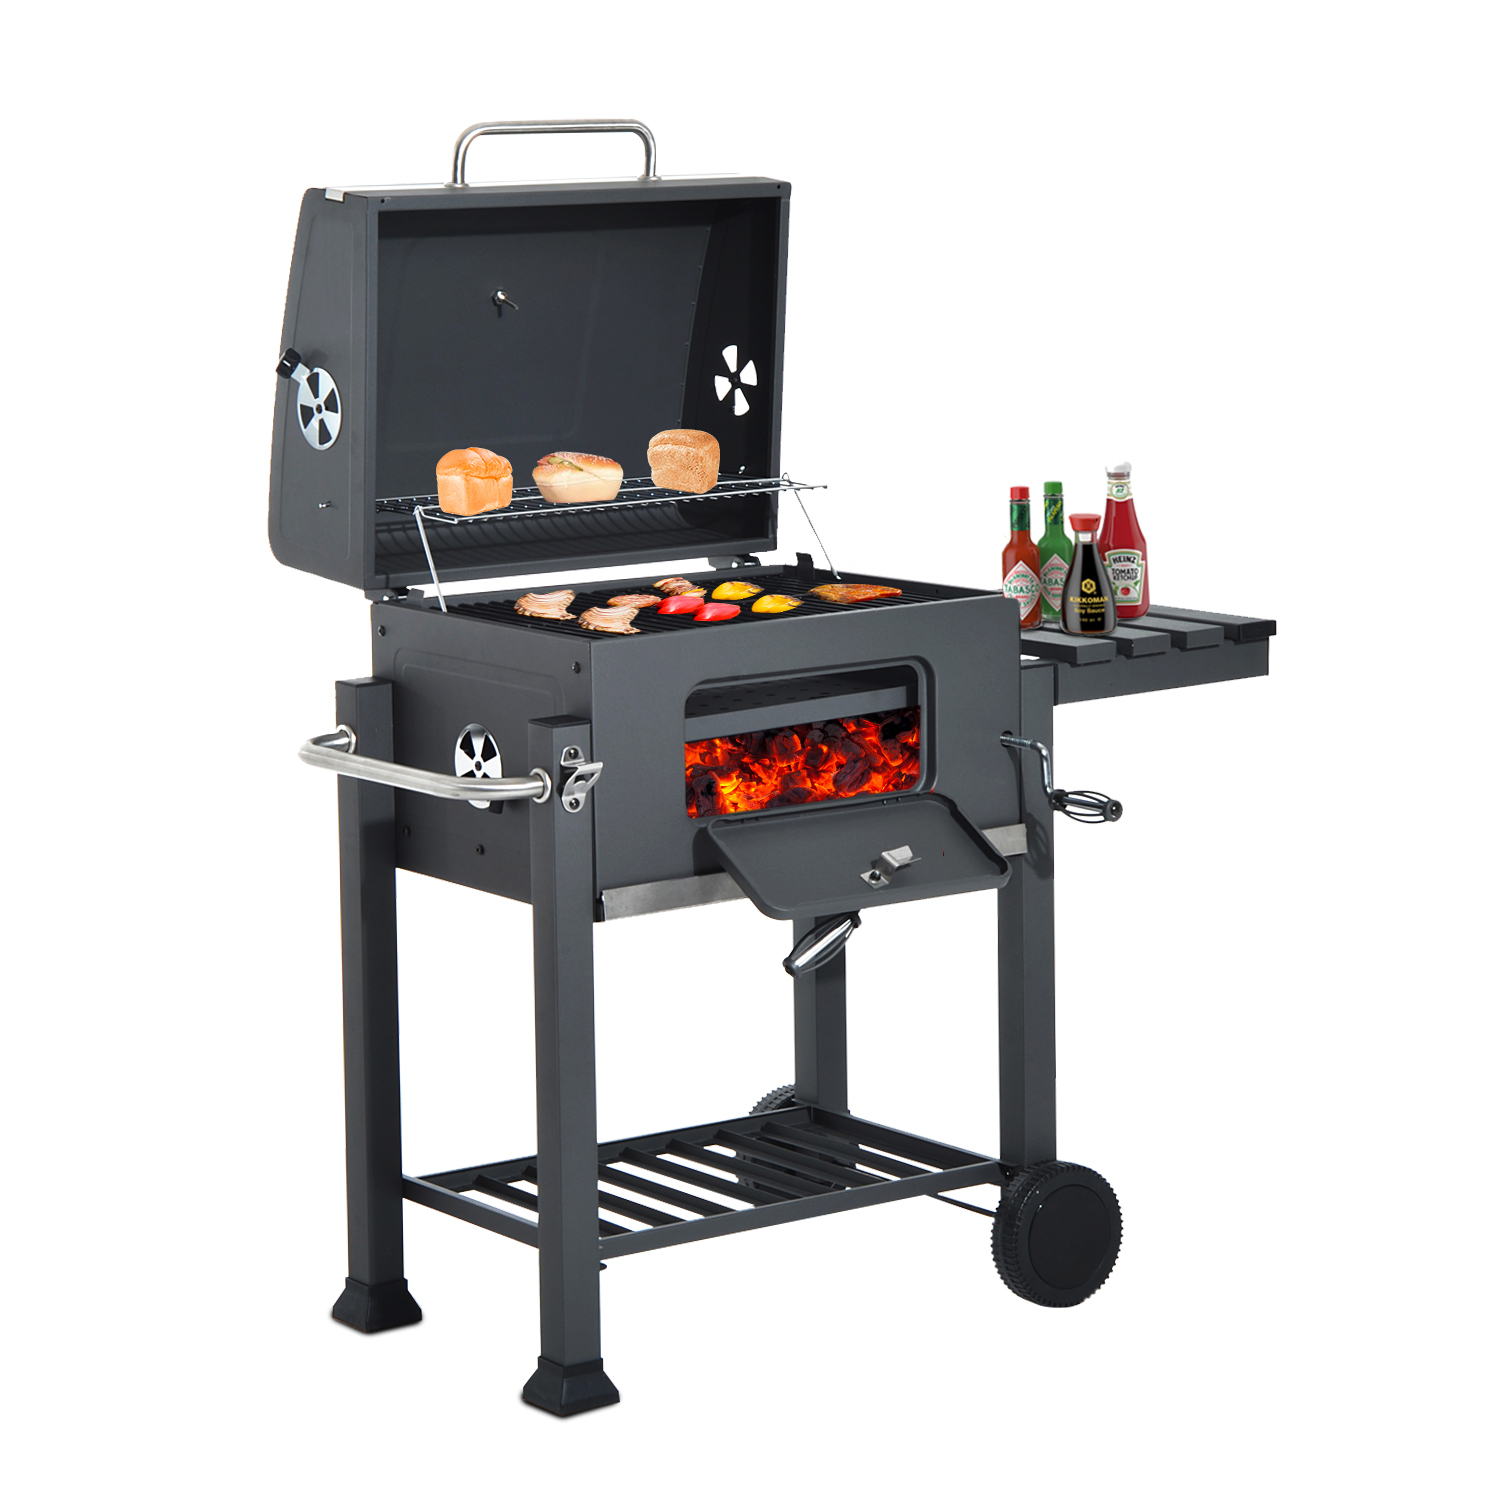 Image of CAD $229.99 Outsunny Charcoal Grill BBQ Trolley Smoker Camping Picnic Portable Backyard with Side Shelf / Barbecue Cooking Patio w/ Canada 95509791191